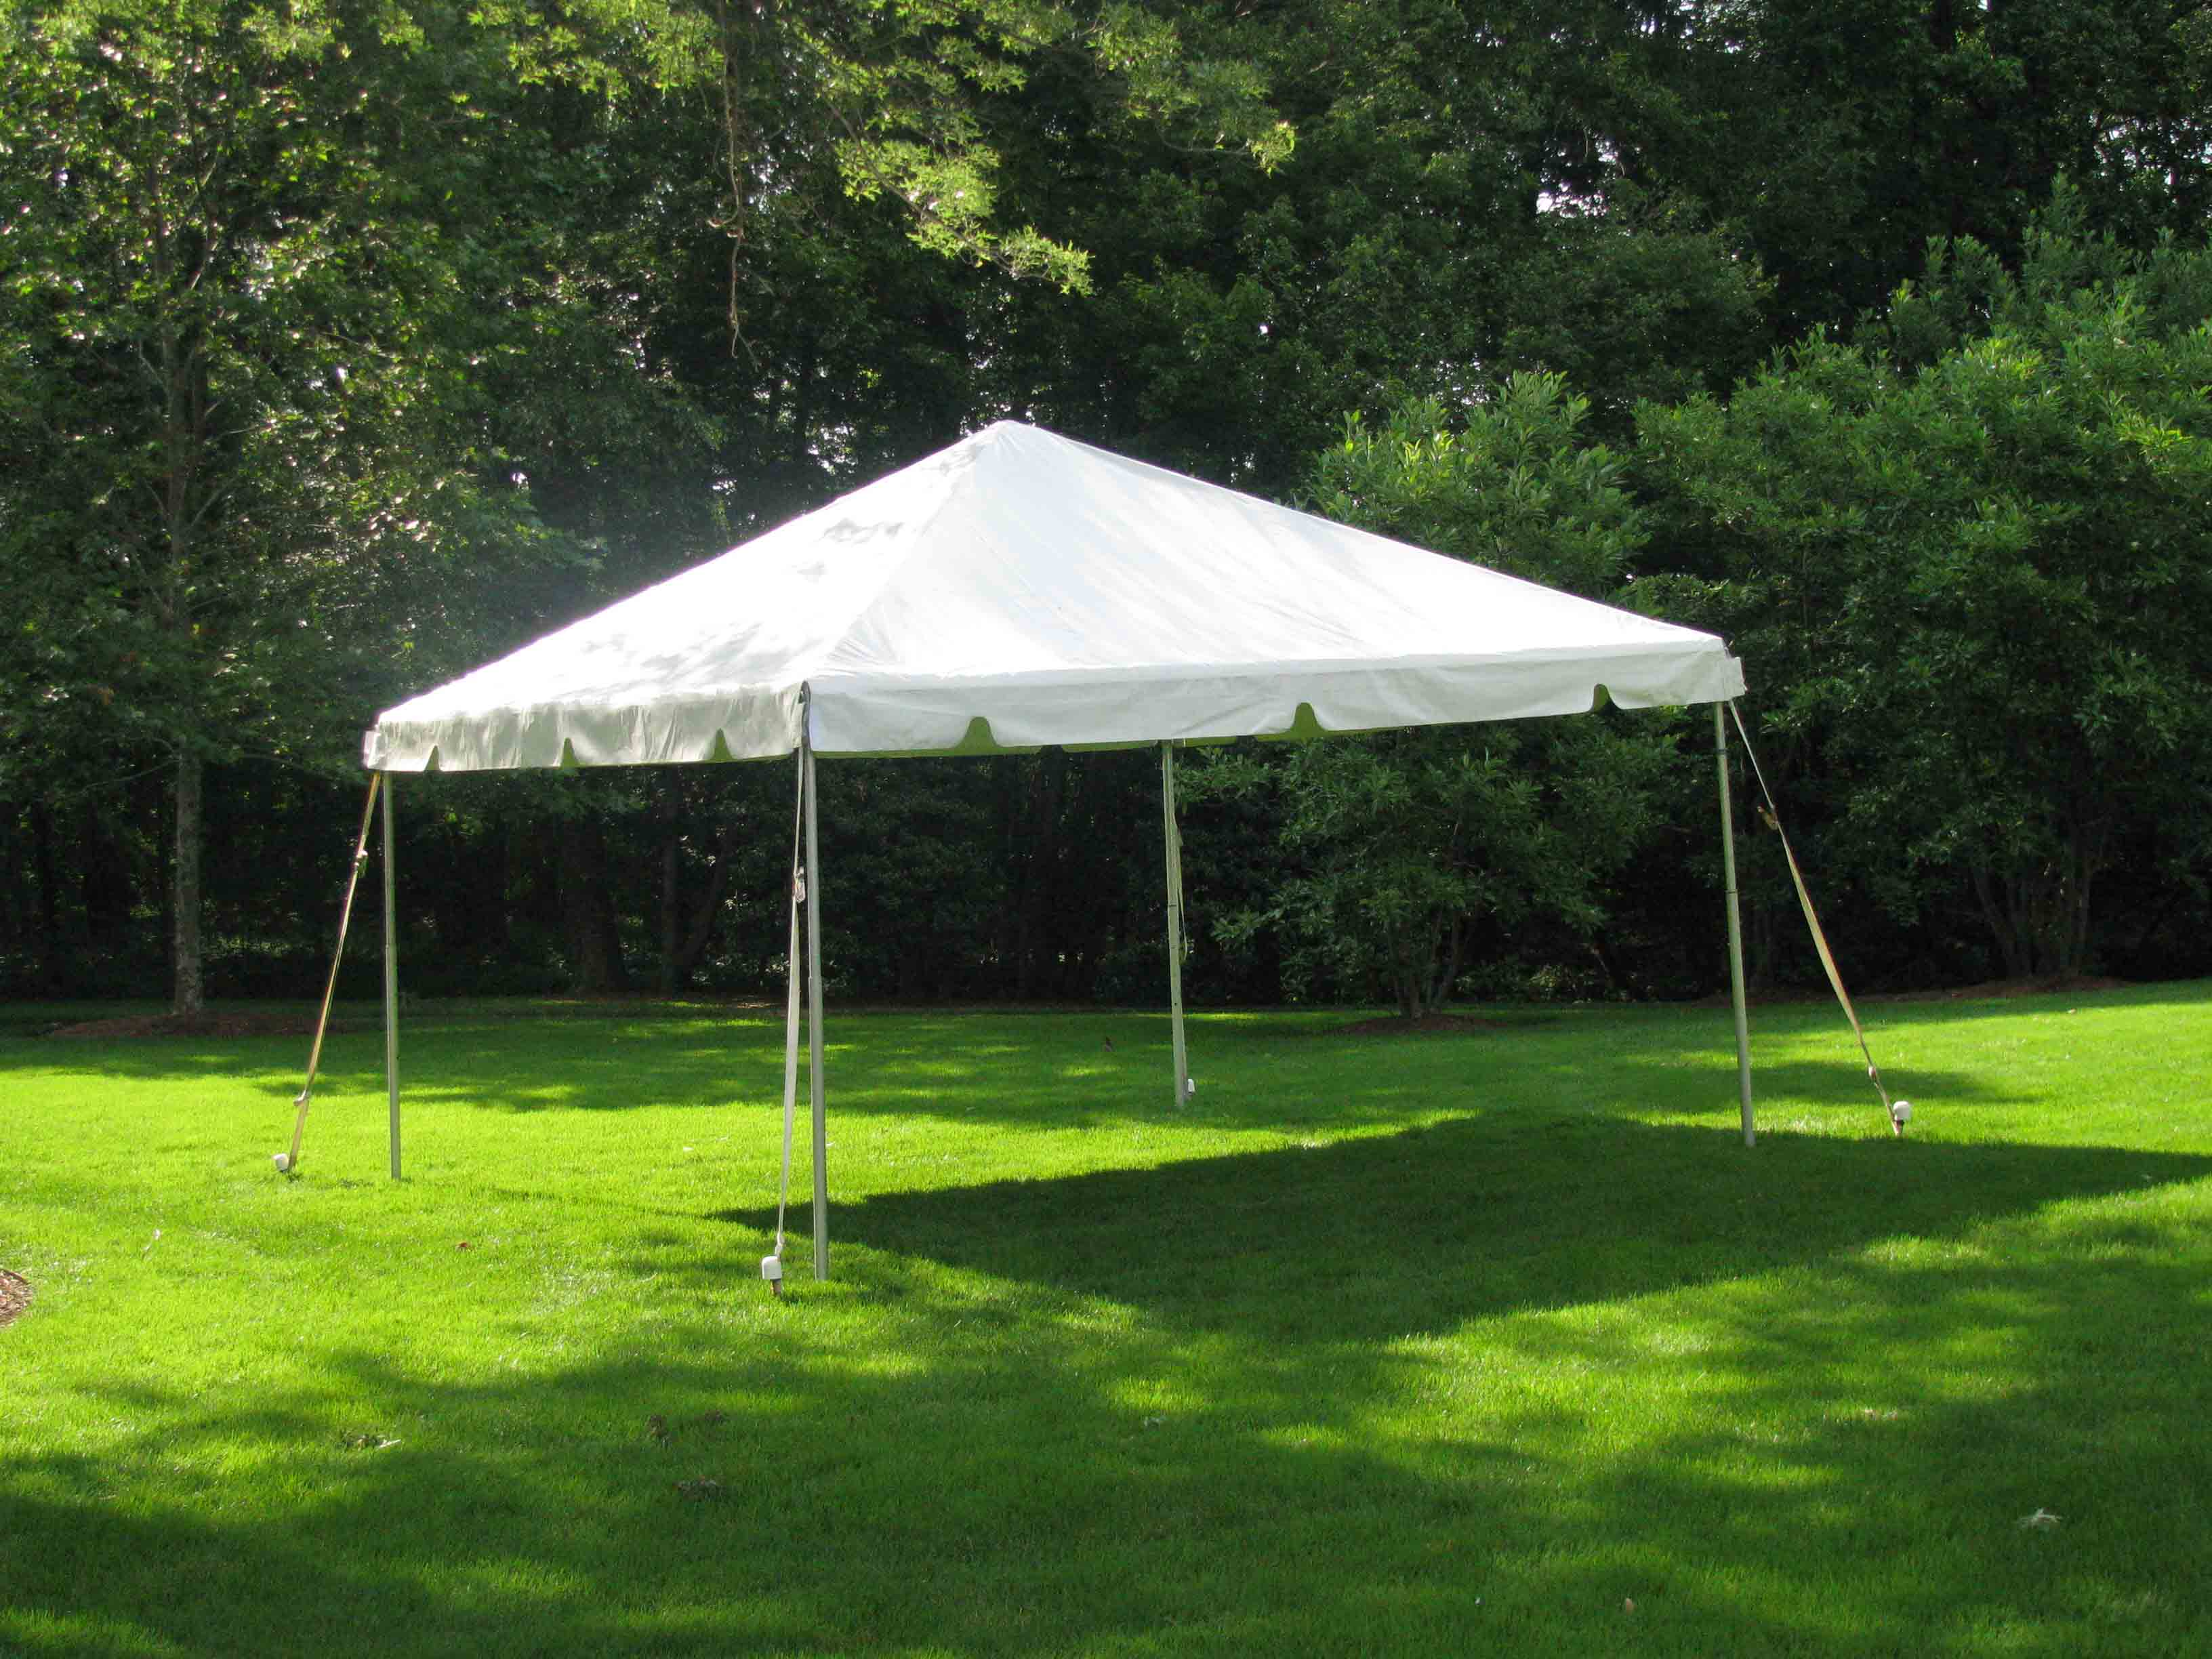 15x15 ft frame tent rental